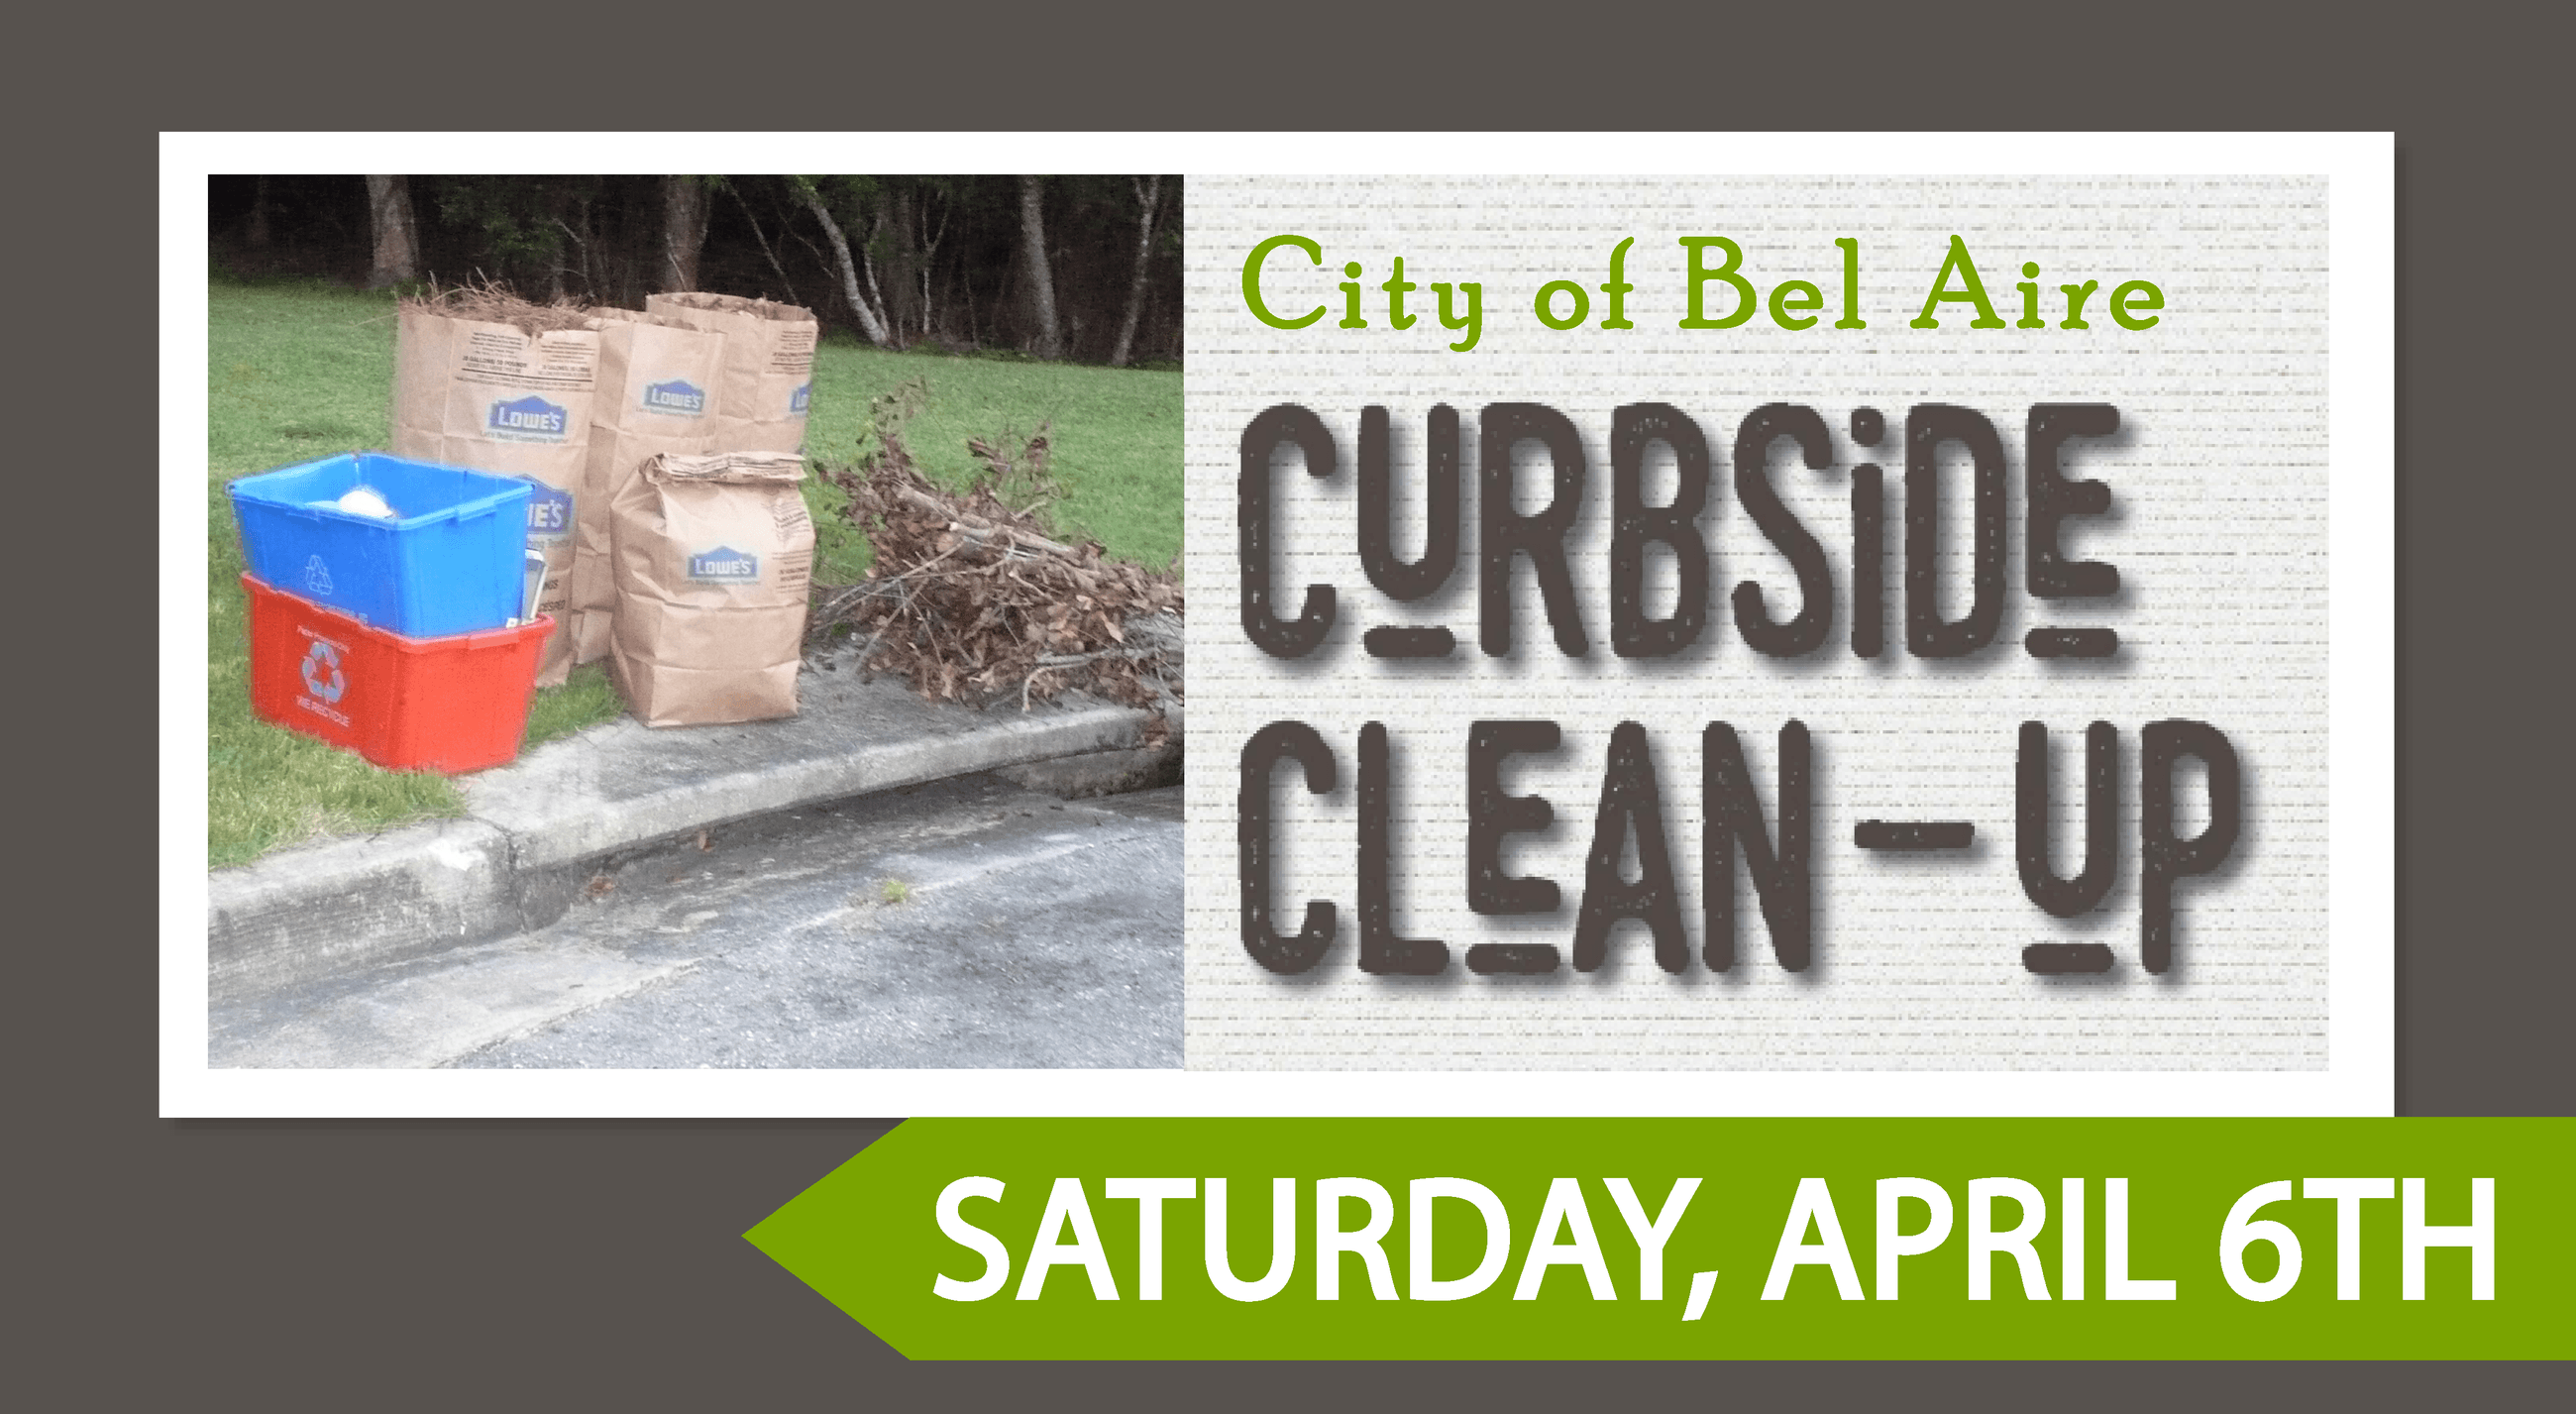 CurbsideCleanUp2019Banner